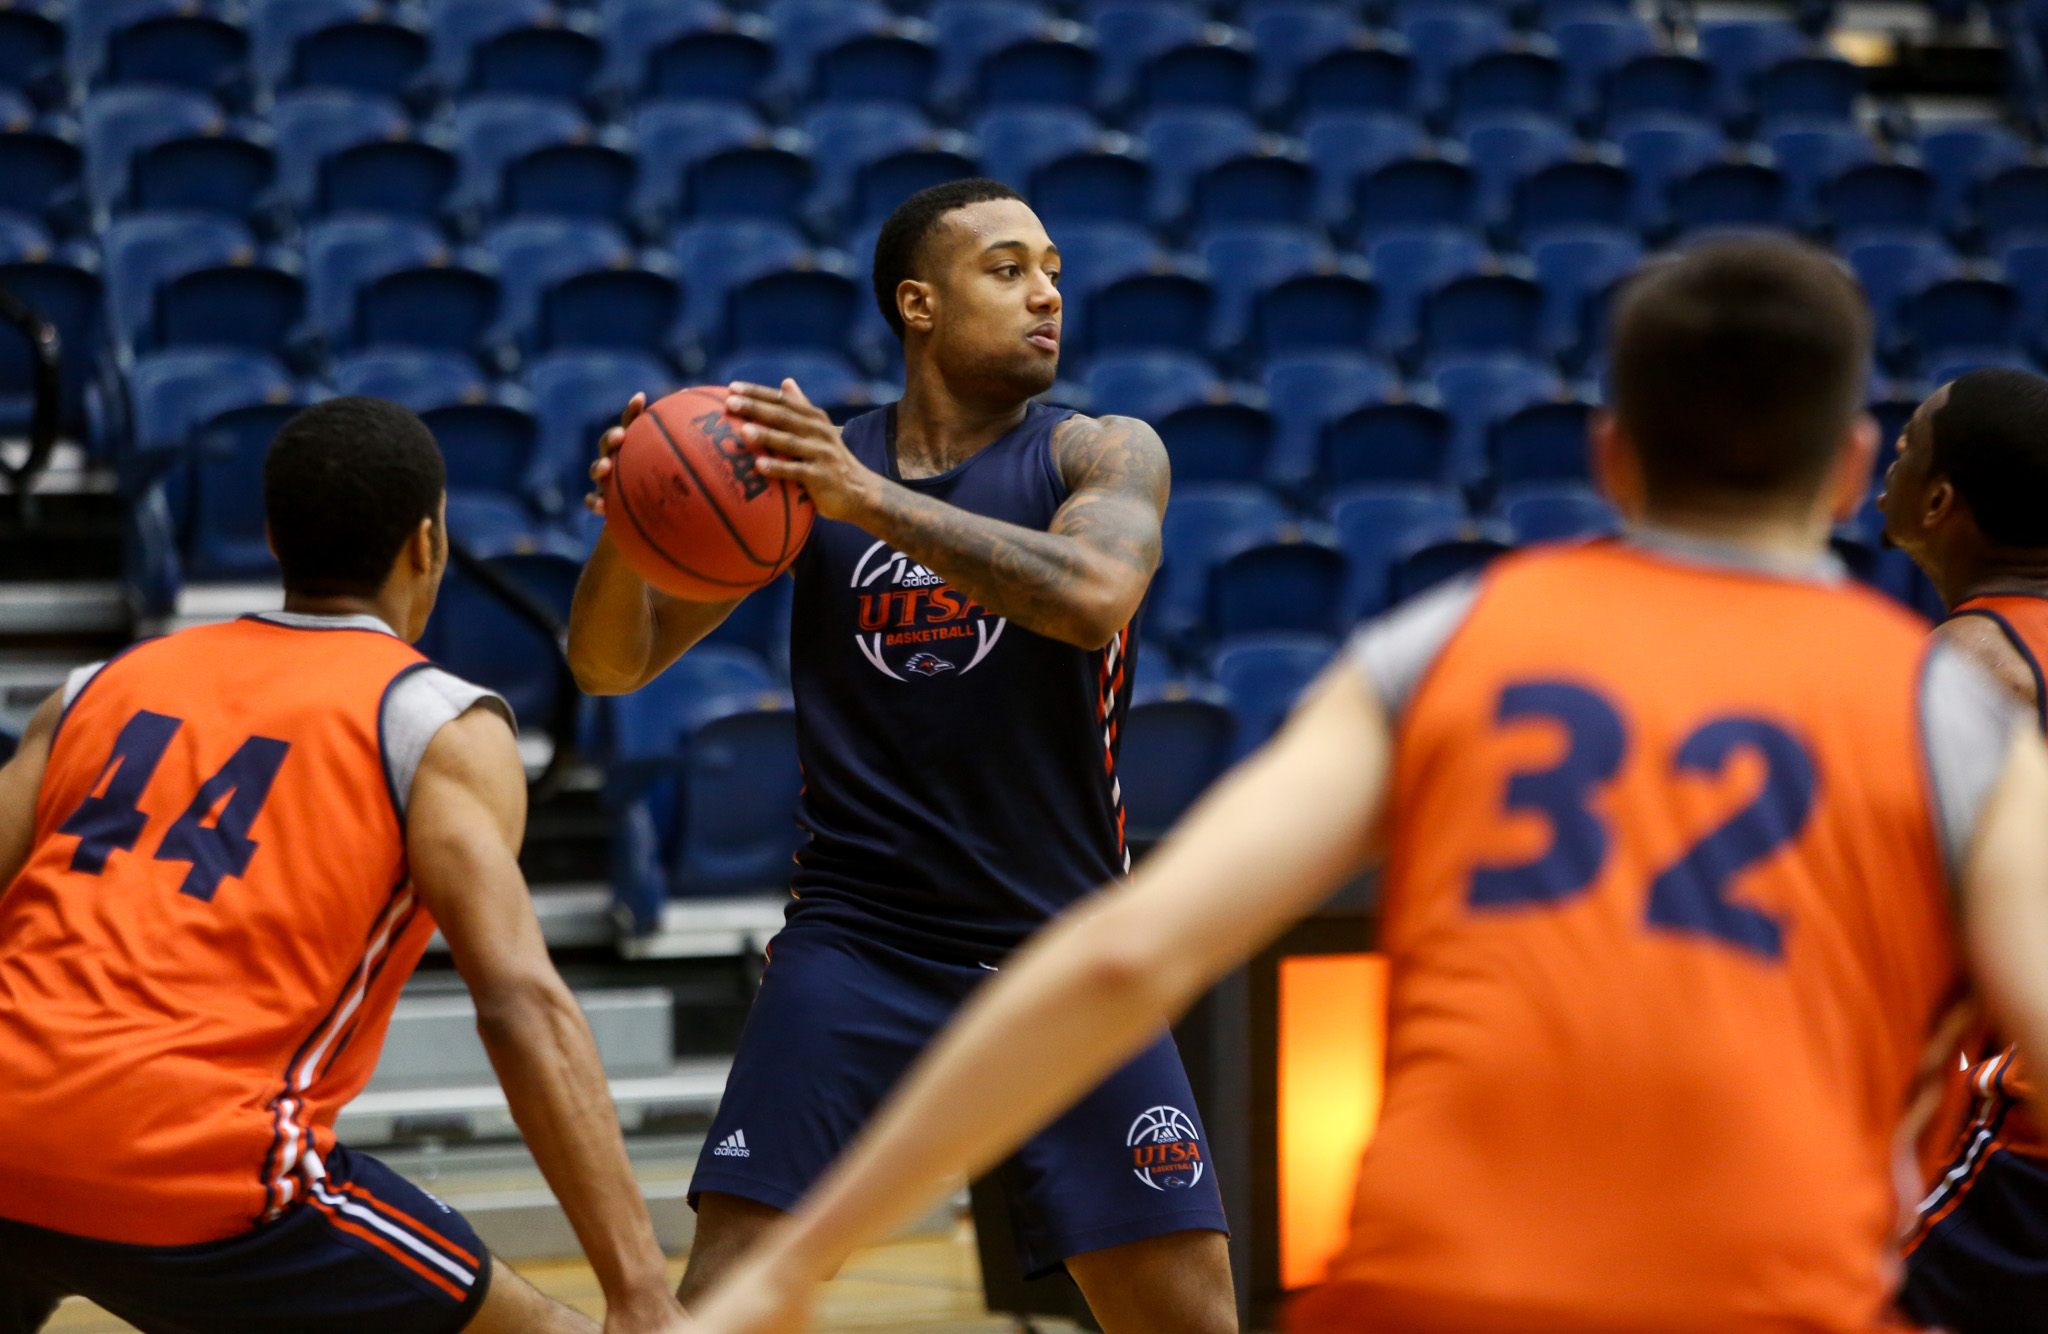 Jeff Beverly looks to pass to a teammate in a recent UTSA basketball practice.